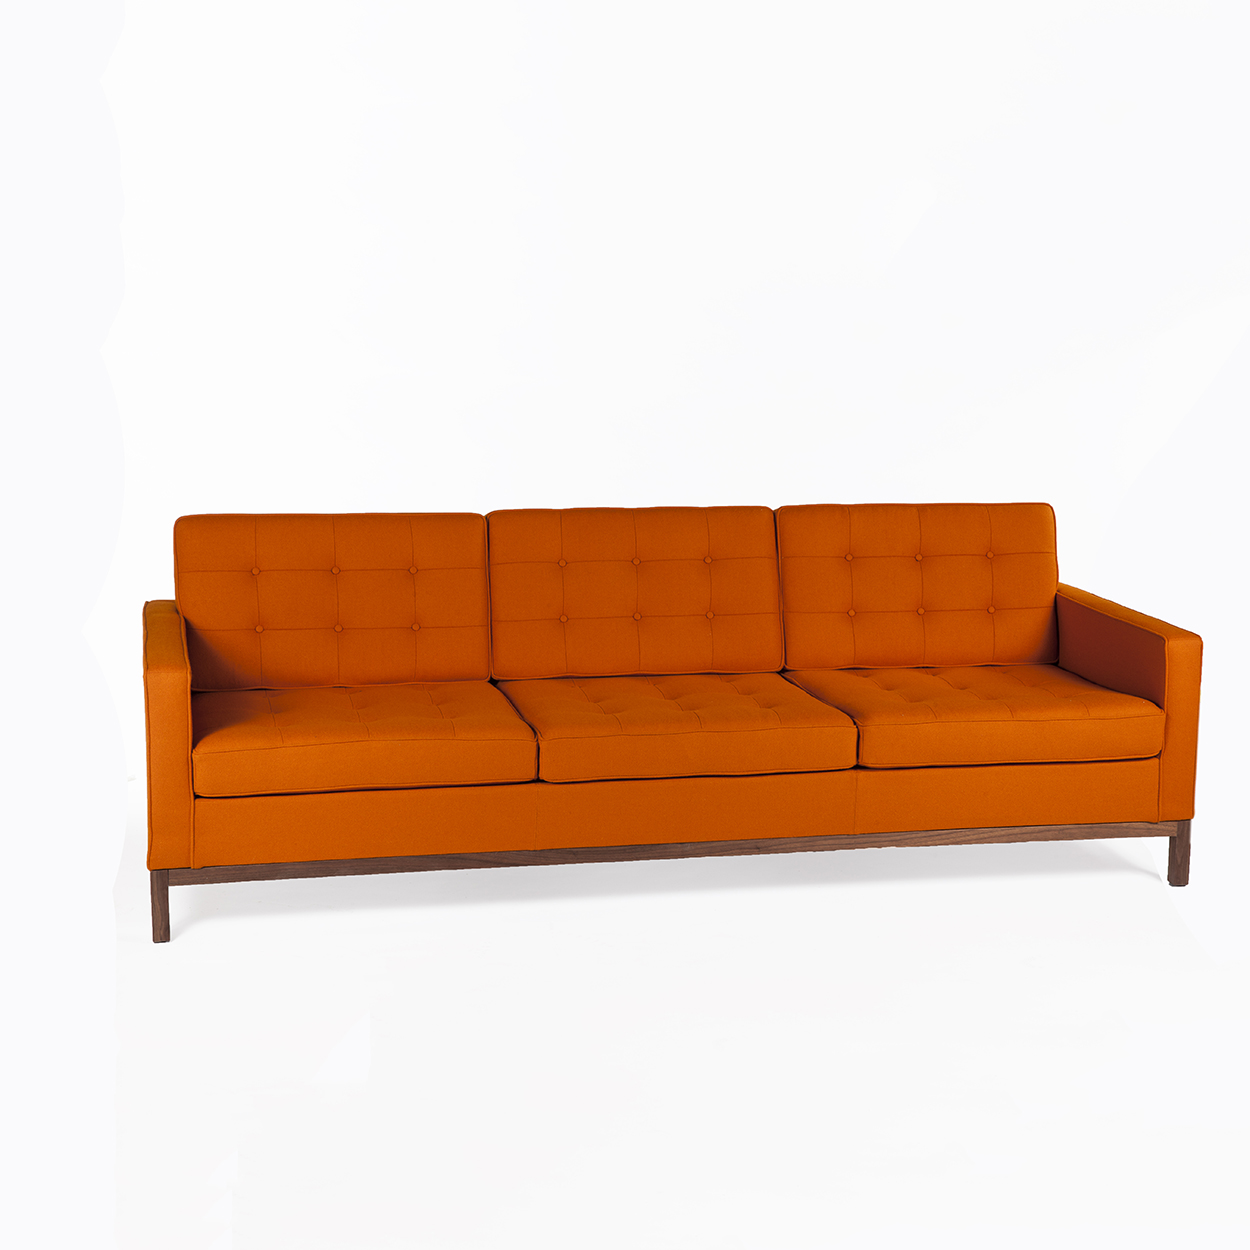 modern_dara_tufted_sofa_-_orange.jpeg